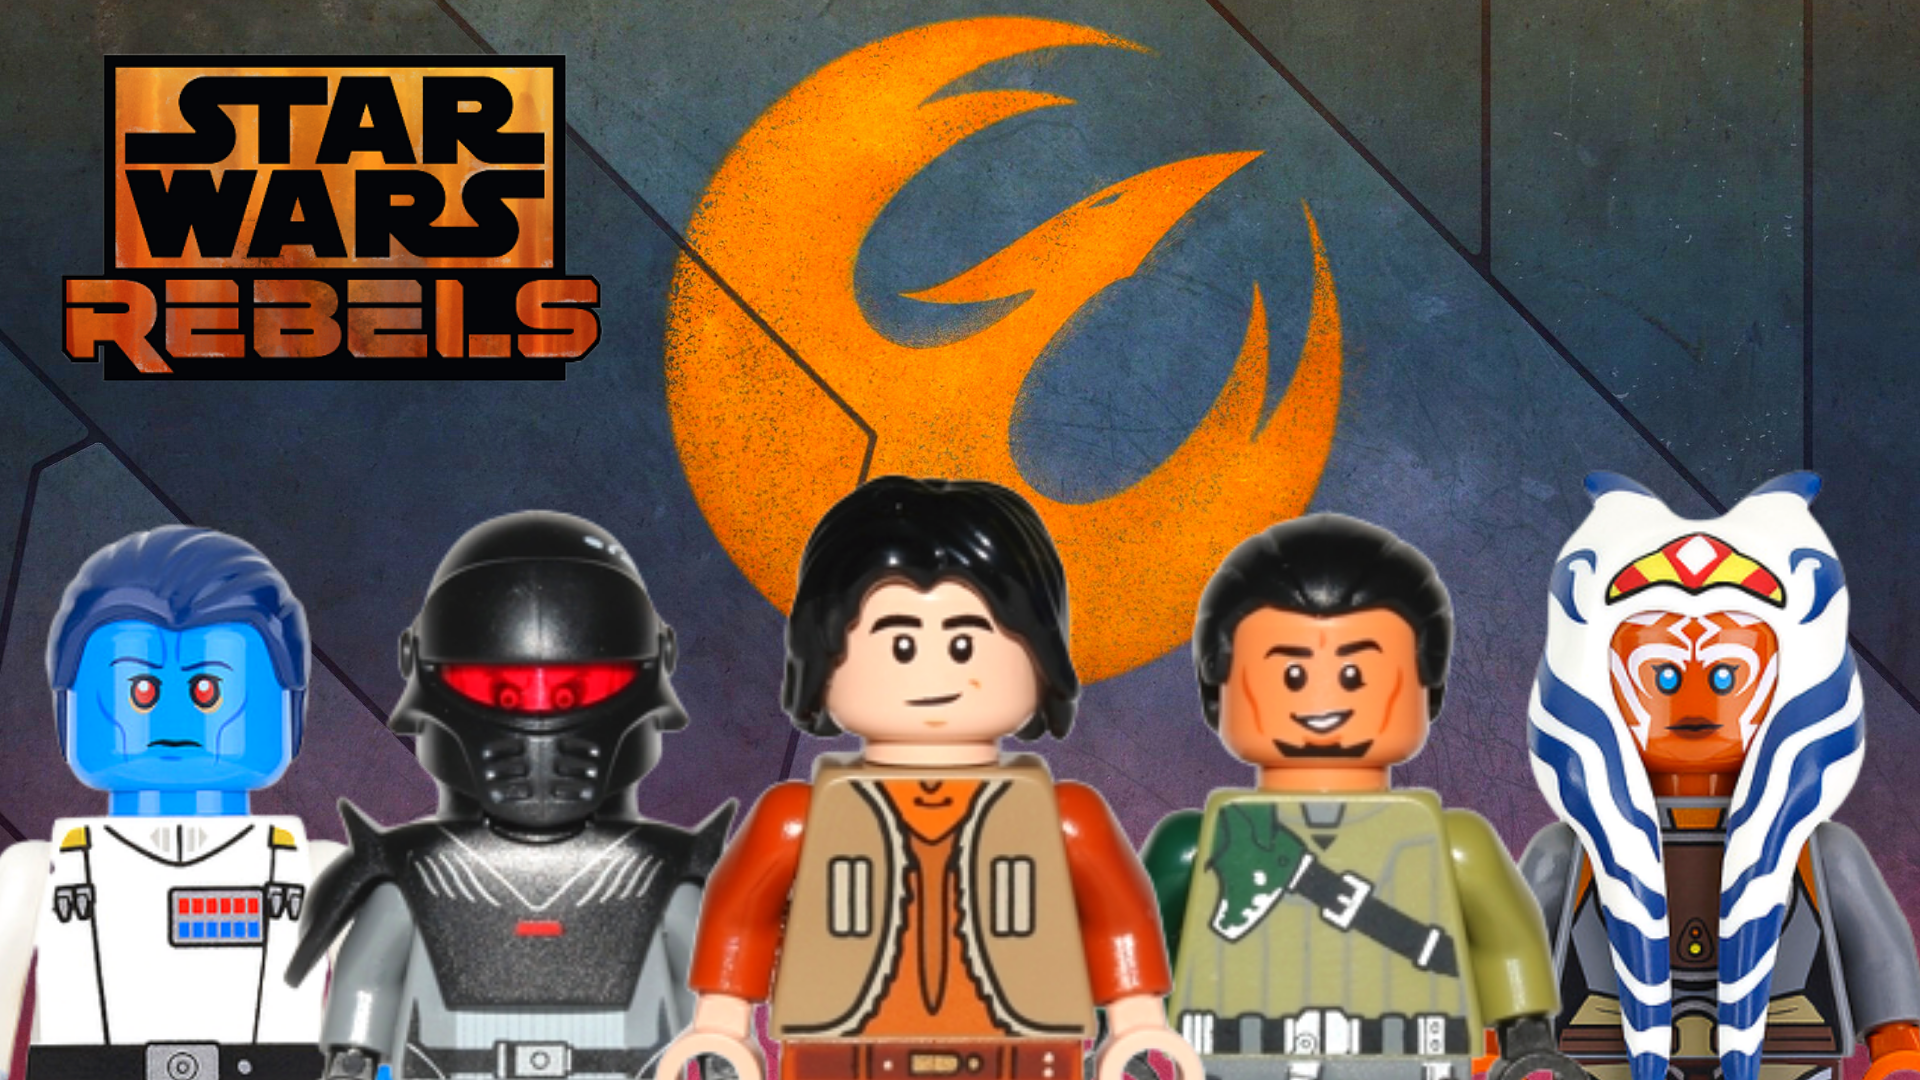 Rebels All Lego Star Wars Minifigures From